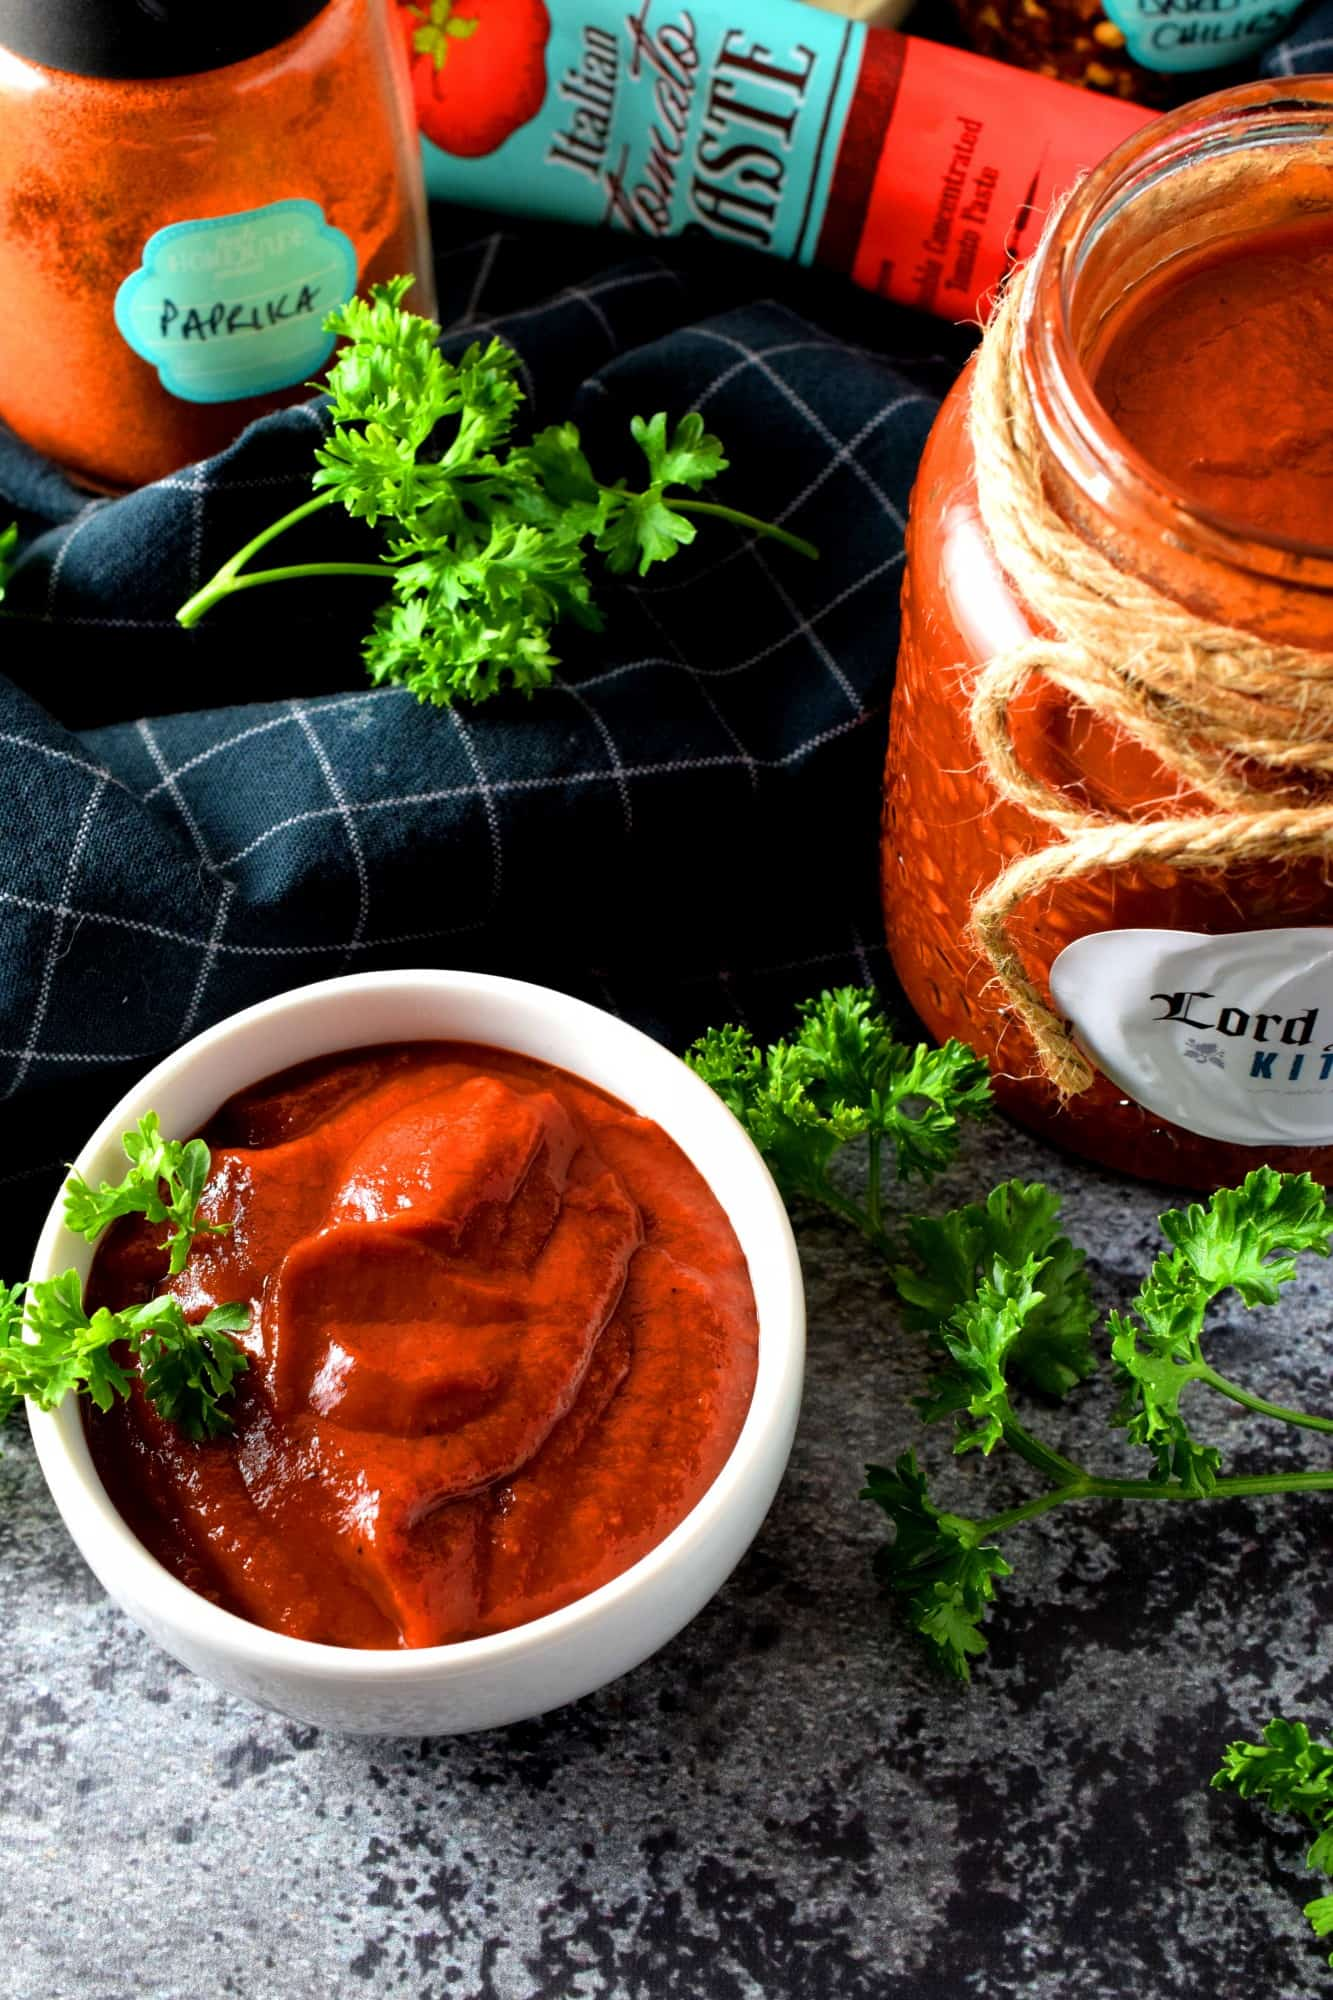 Sugar Free Hot And Smoky Barbeque Sauce